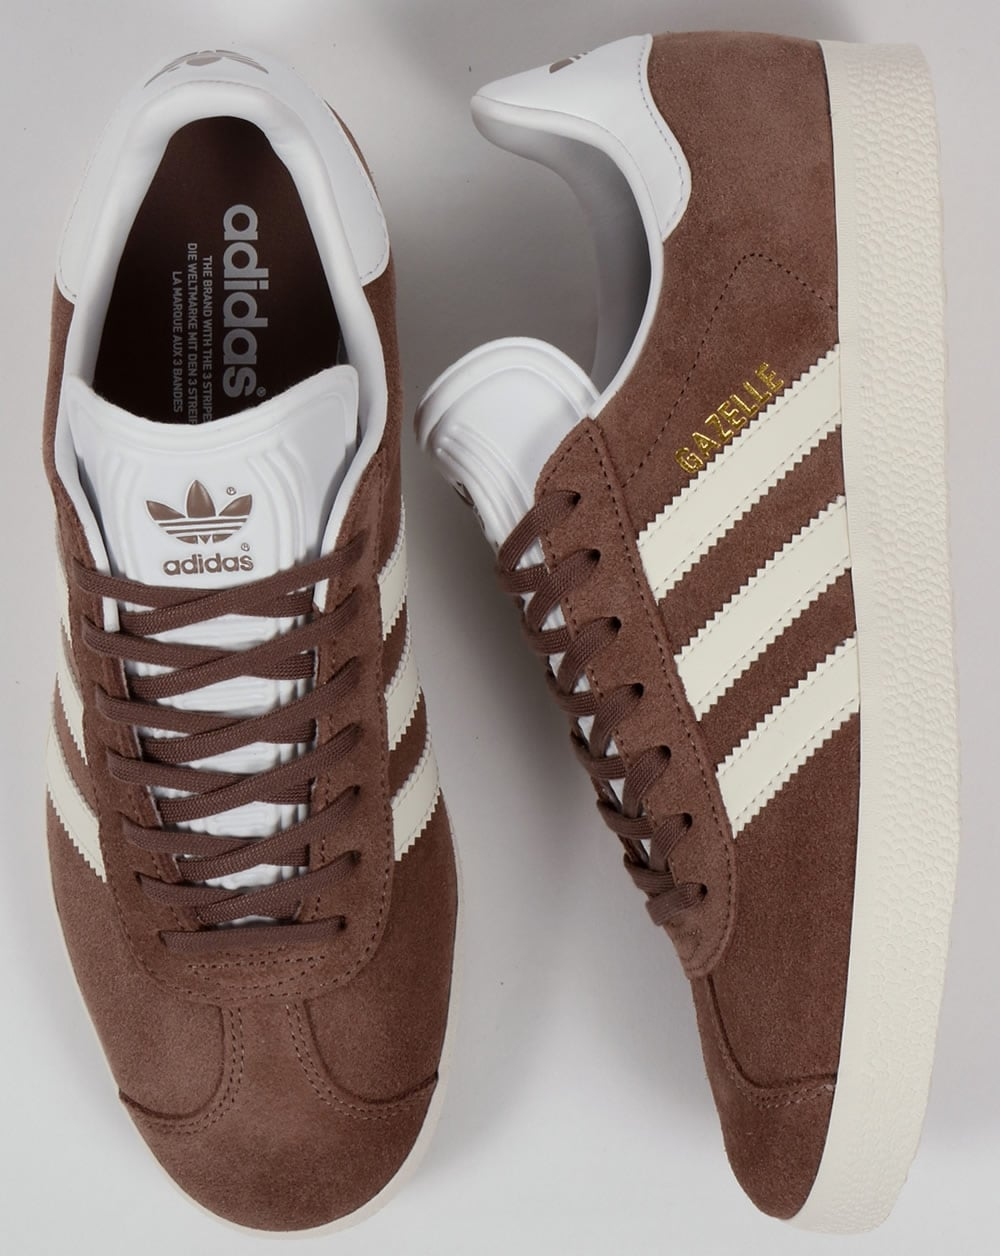 joyería Típico Abierto  Adidas Gazelle Trainers Trace Brown/Off White,originals,shoes,mens,sneakers